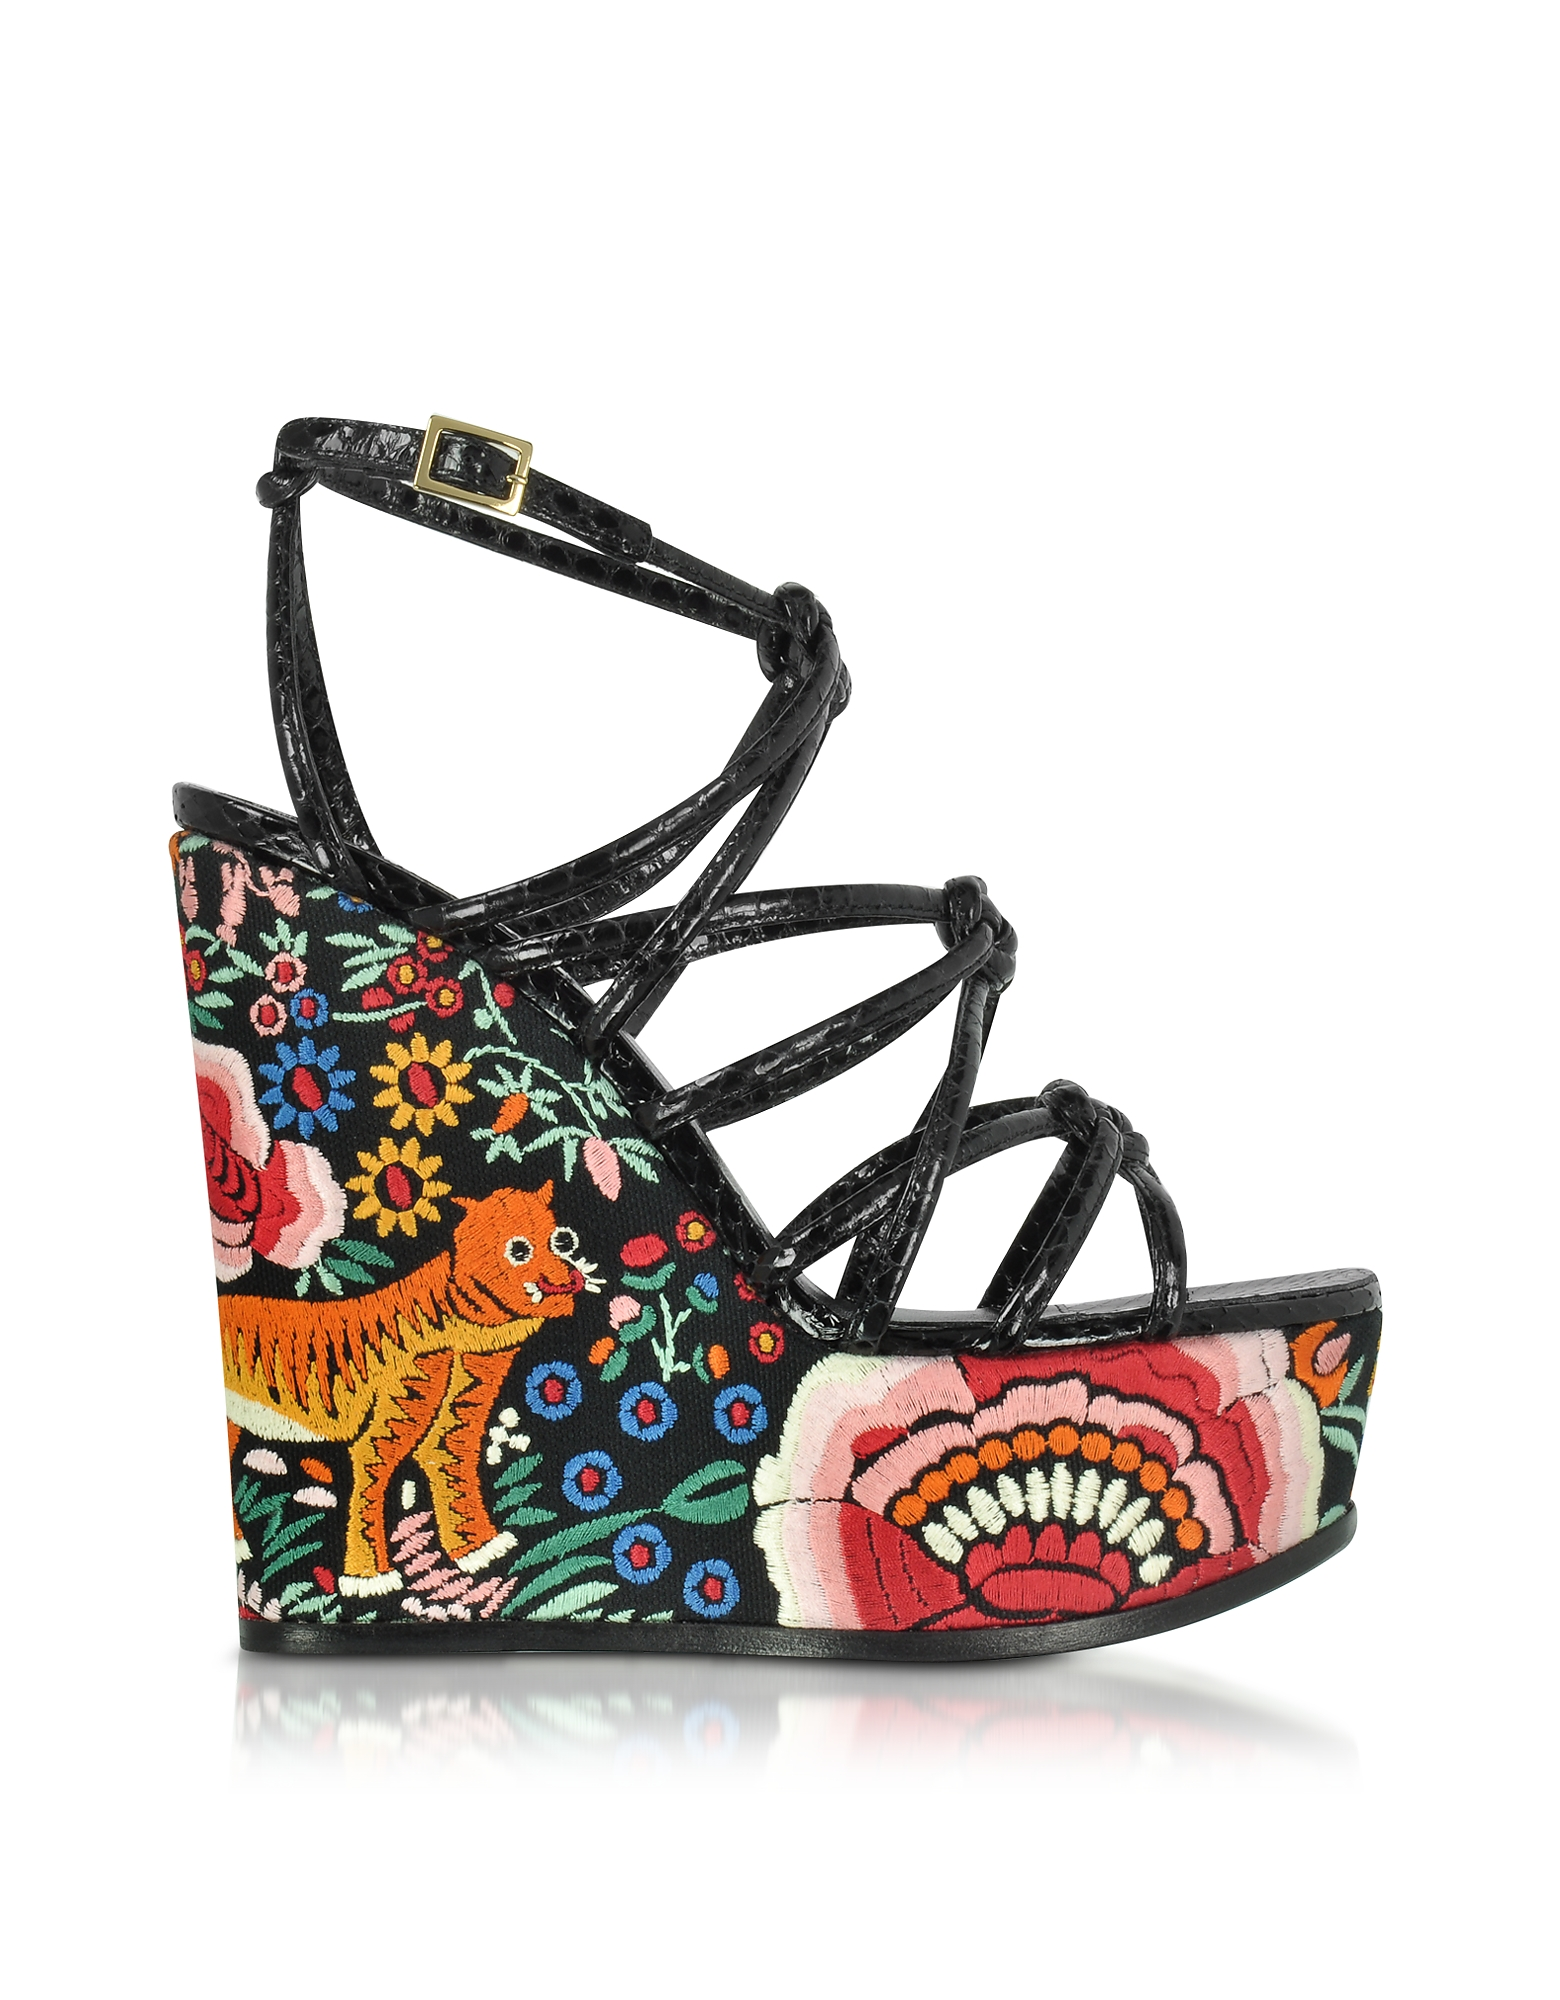 Roberto Cavalli Designer Shoes, Floral Embroidered Black Leather Wedges